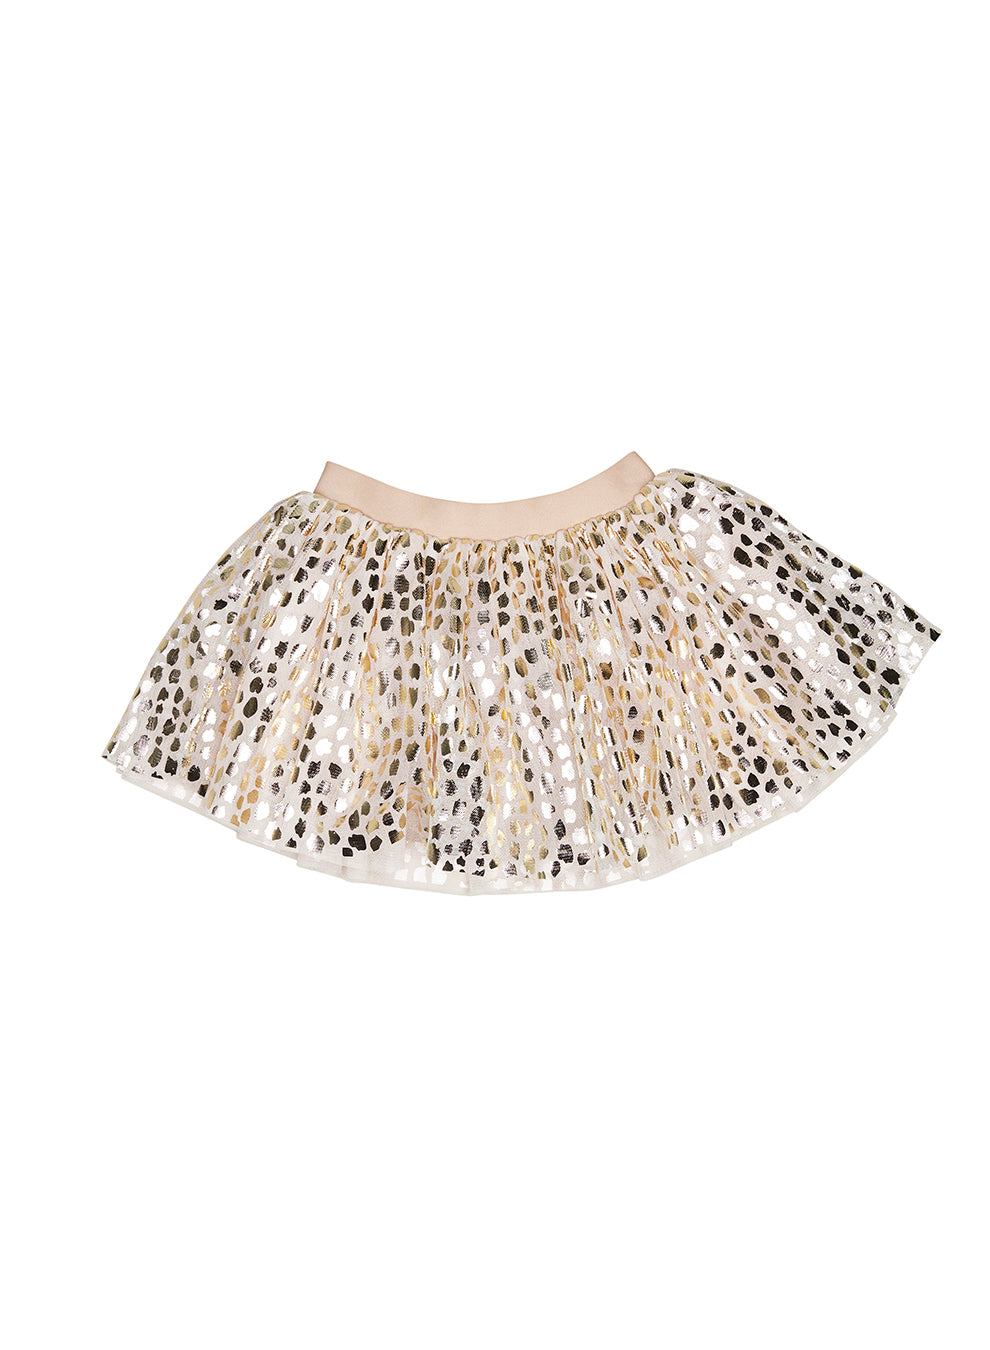 Huxbaby Gold Leopard Tulle Skirt - Rose Gold